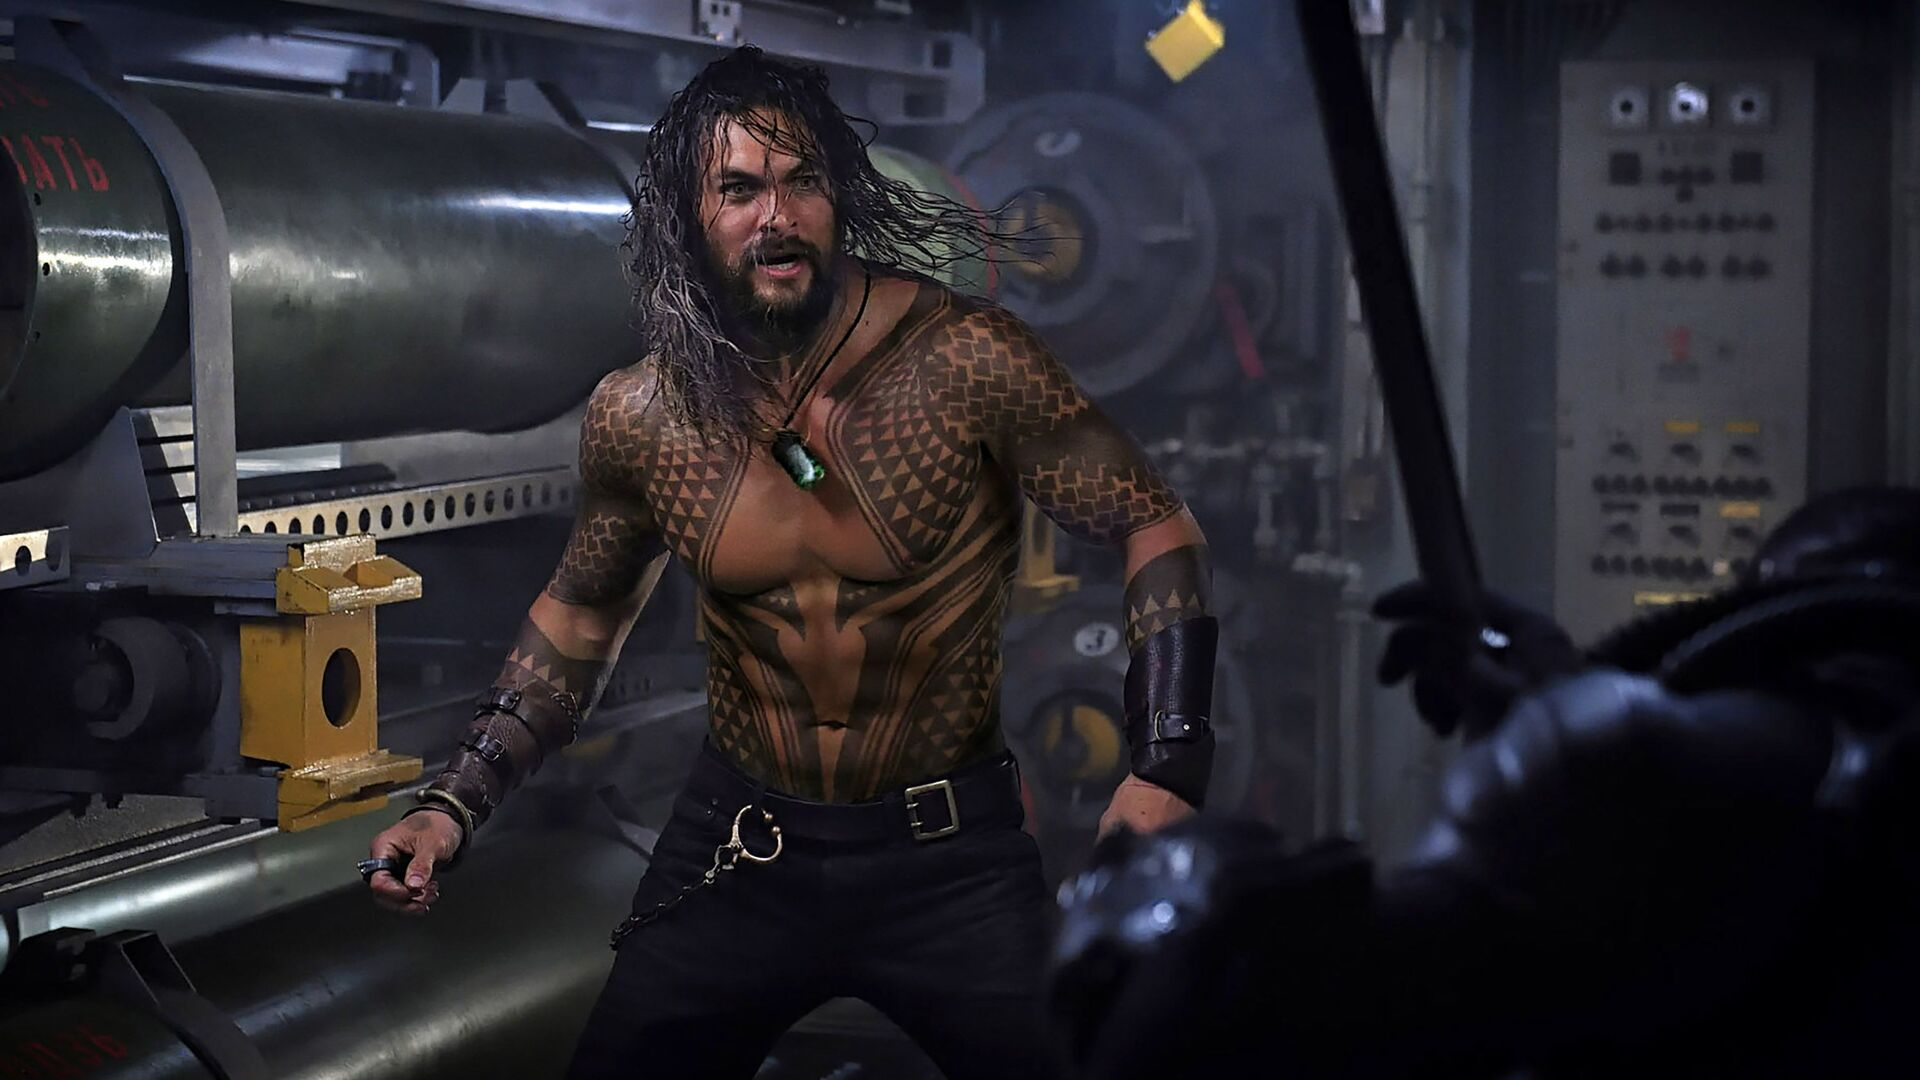 jason-momoa-in-aquaman-2018-movie-jy.jpg